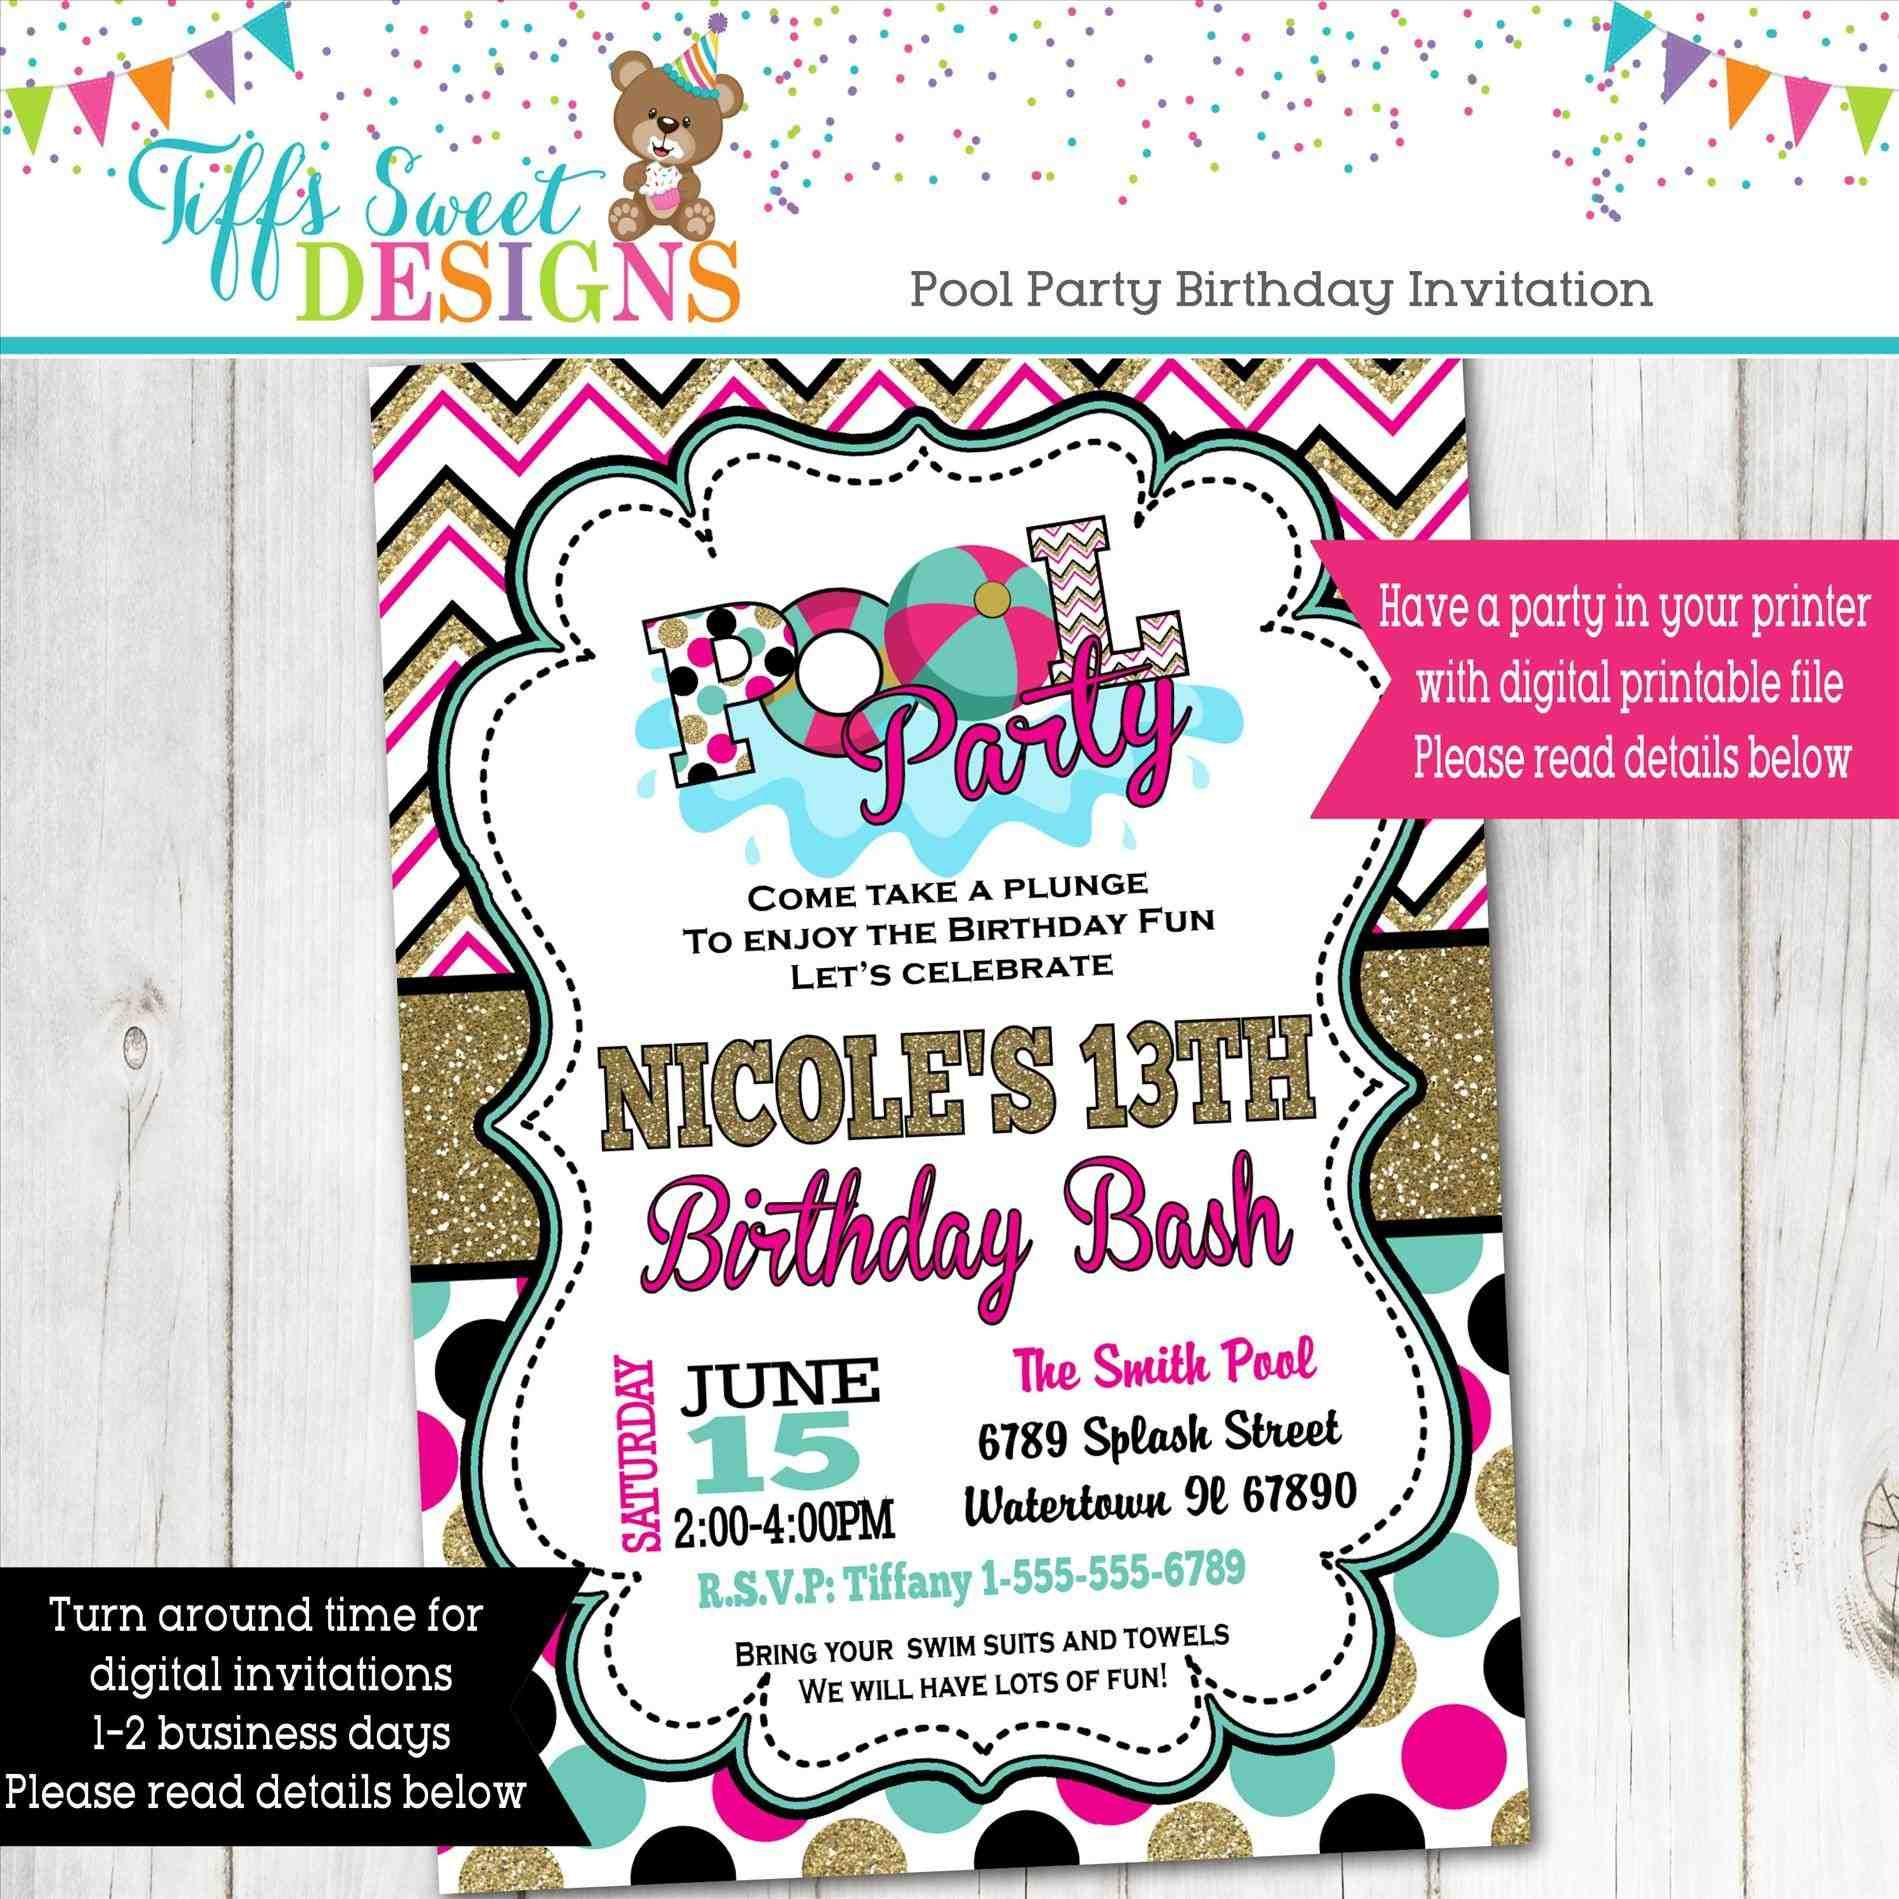 pool party invitation ideas homemade gallery party invitations ideas ...